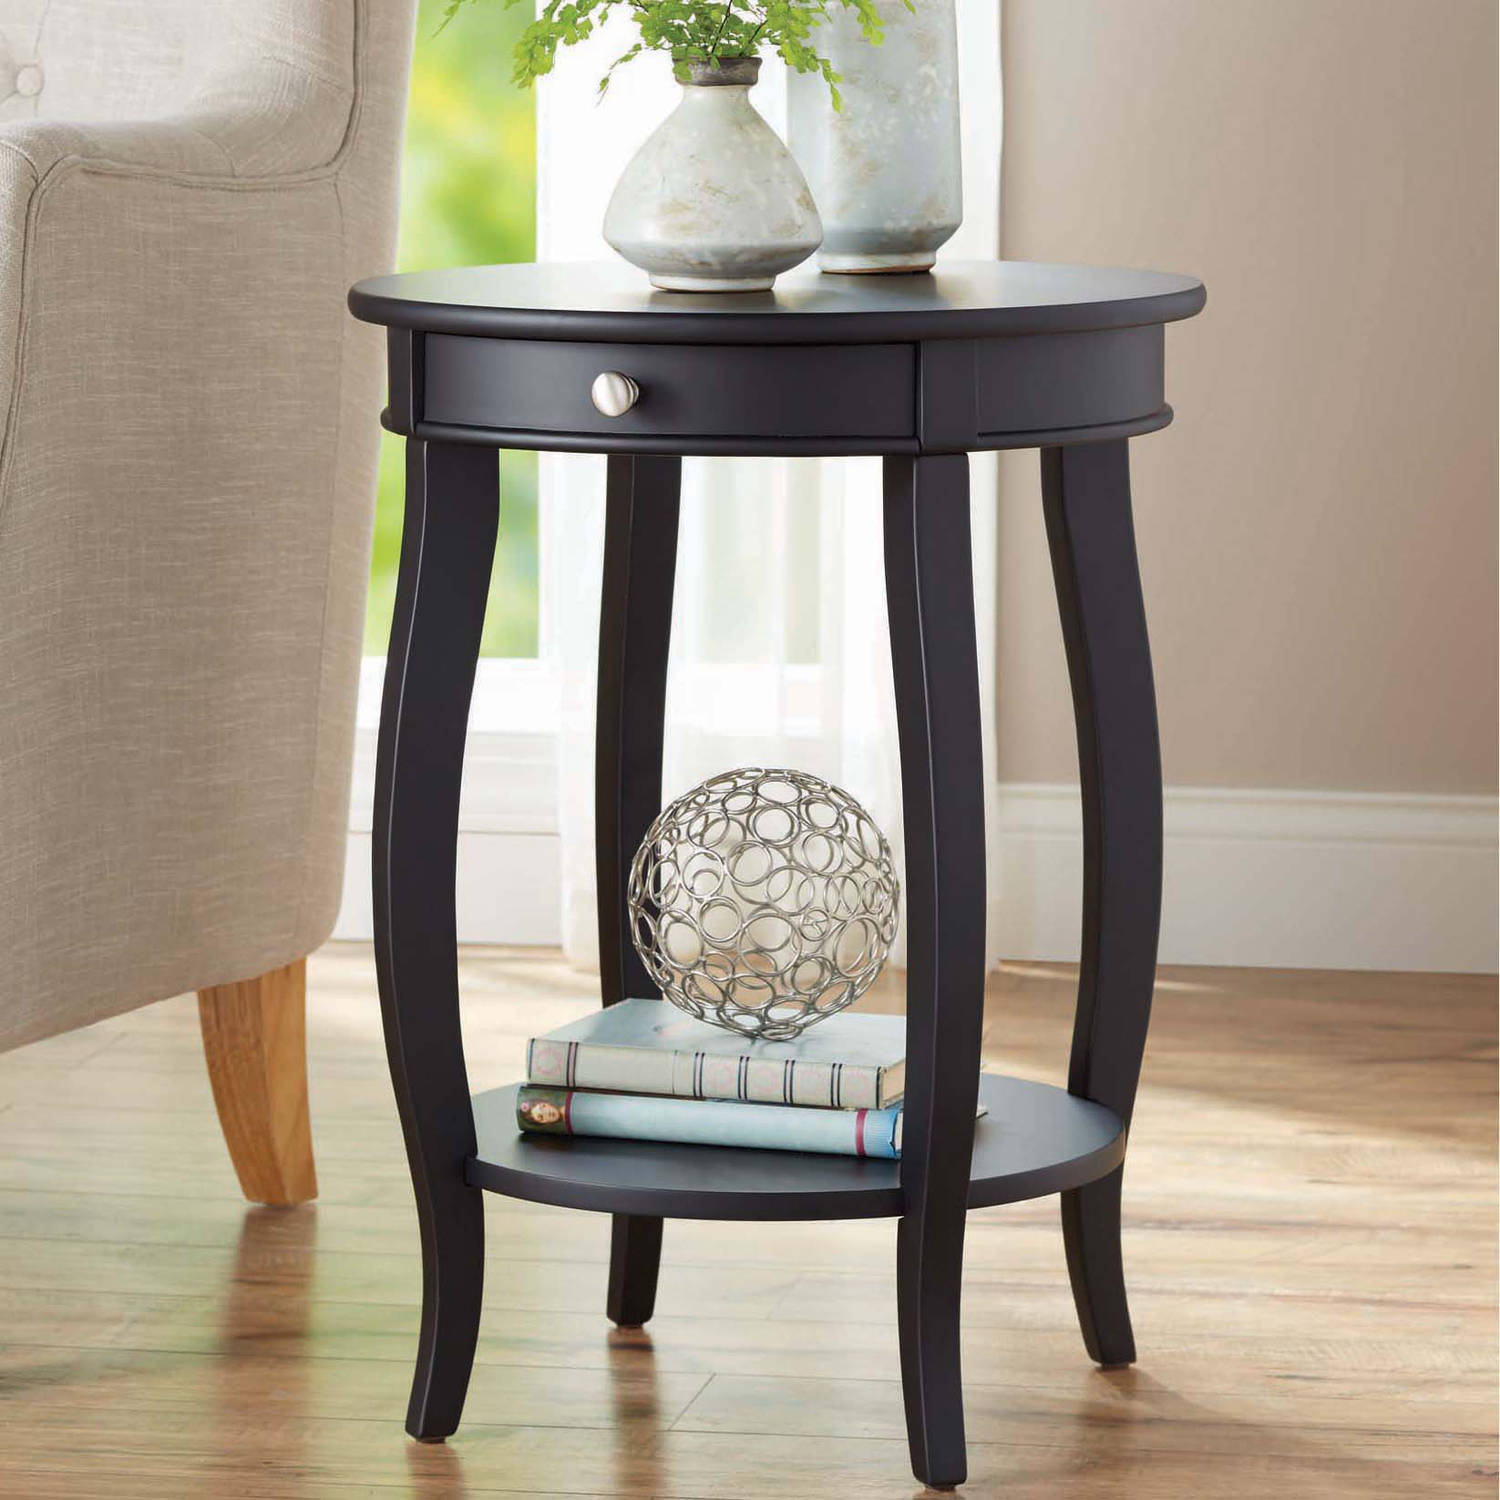 better homes gardens round accent table with drawer multiple side tables colors rustic white nightstand target small metal outdoor antique glass tiffany style lamp shades student